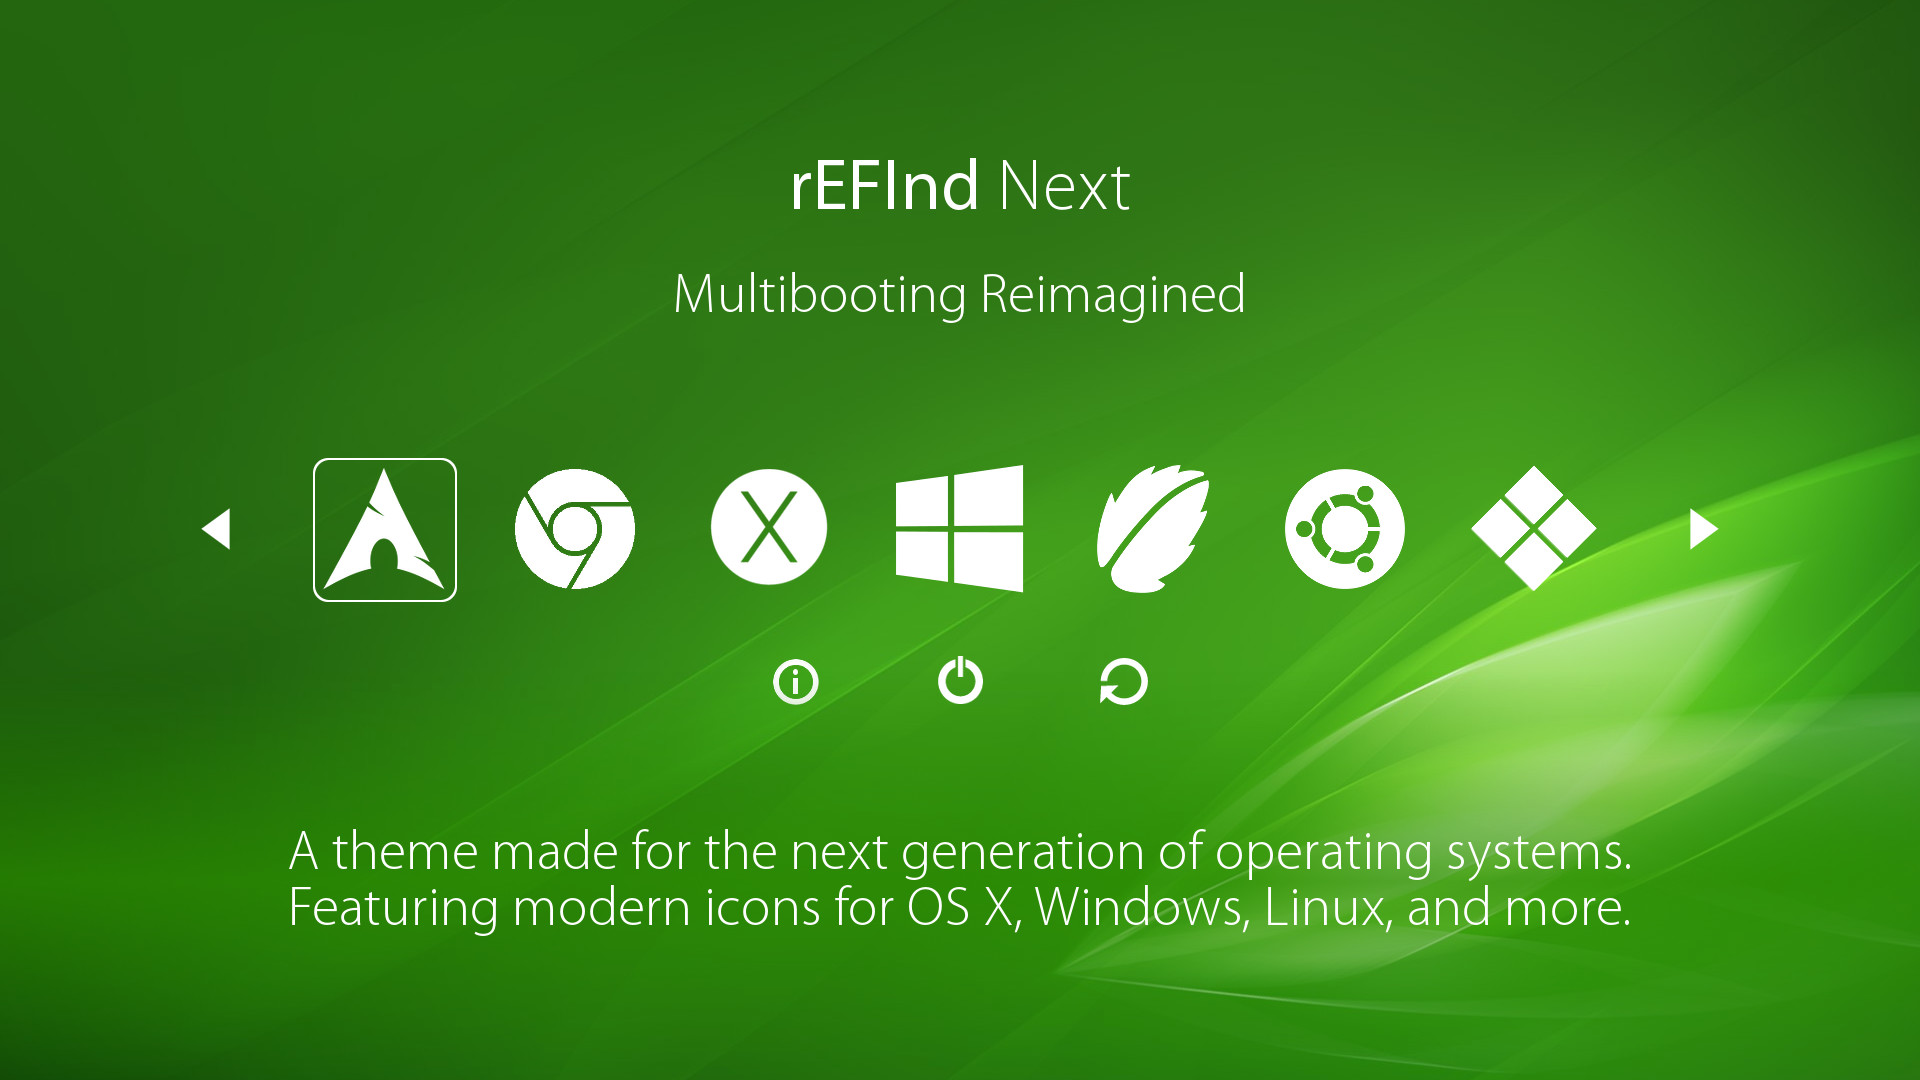 rEFInd Next uses simple white icons against green artwork